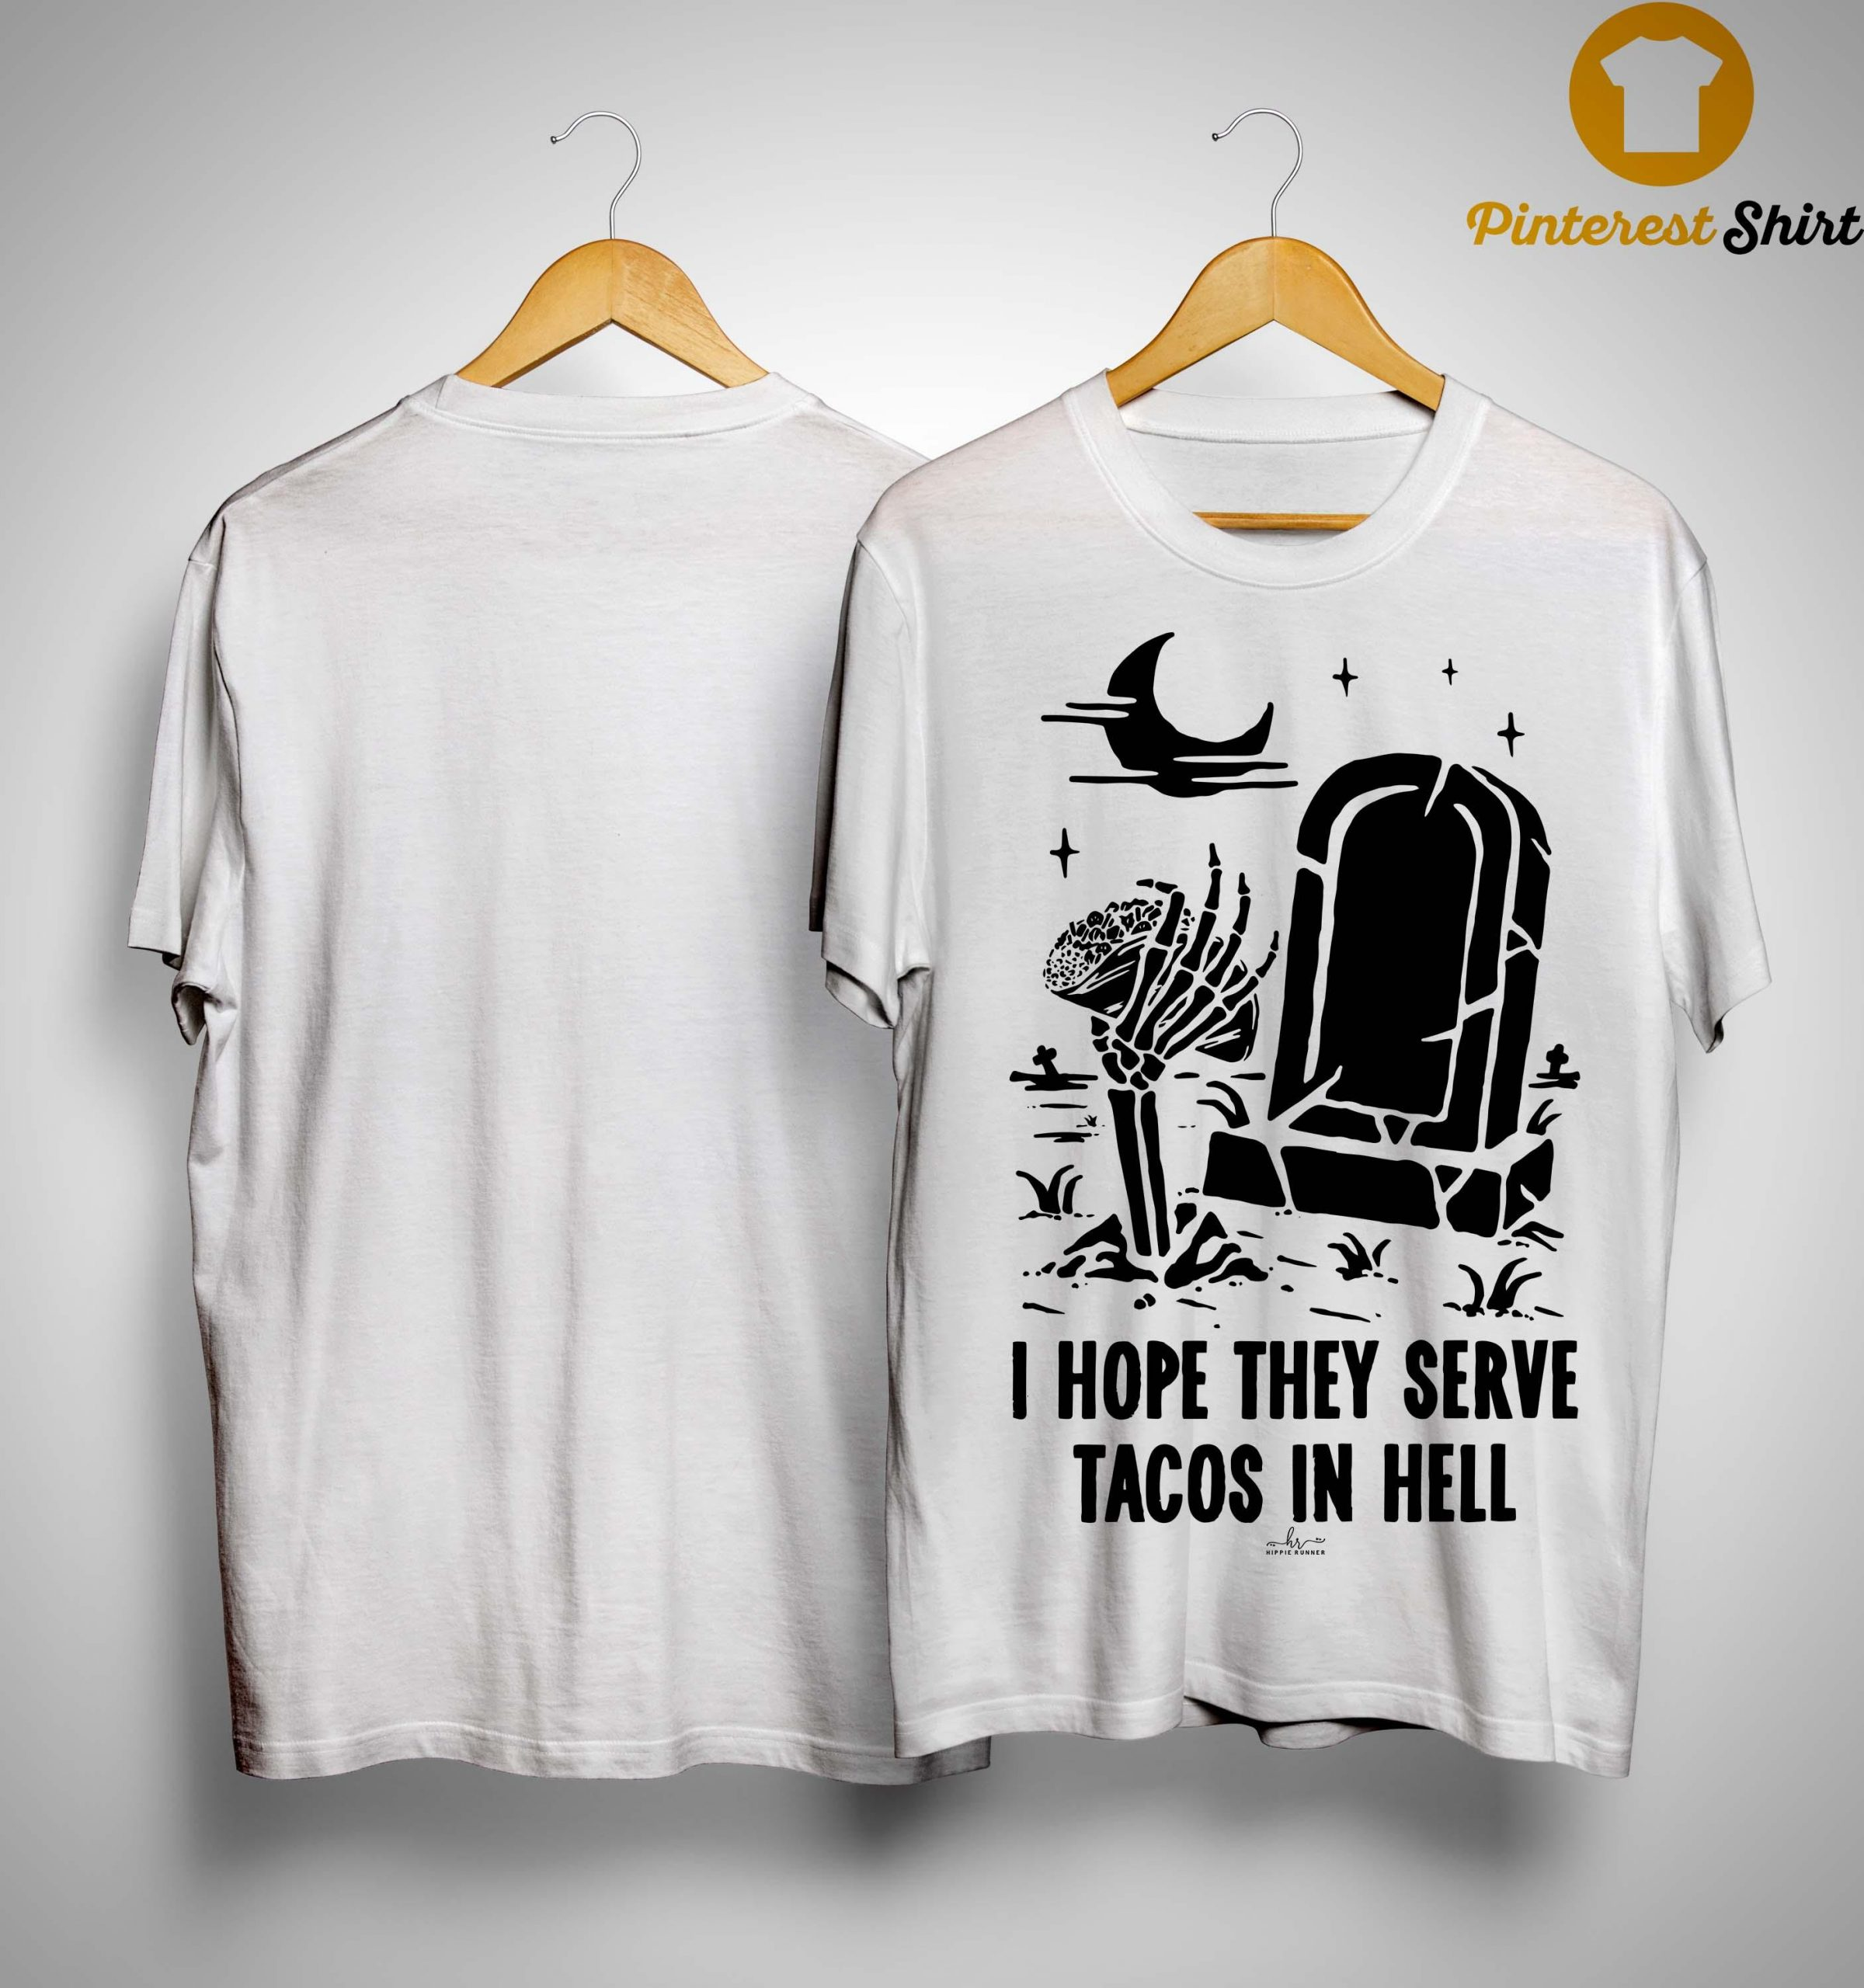 I Hope They Serve Tacos In Hell Shirt